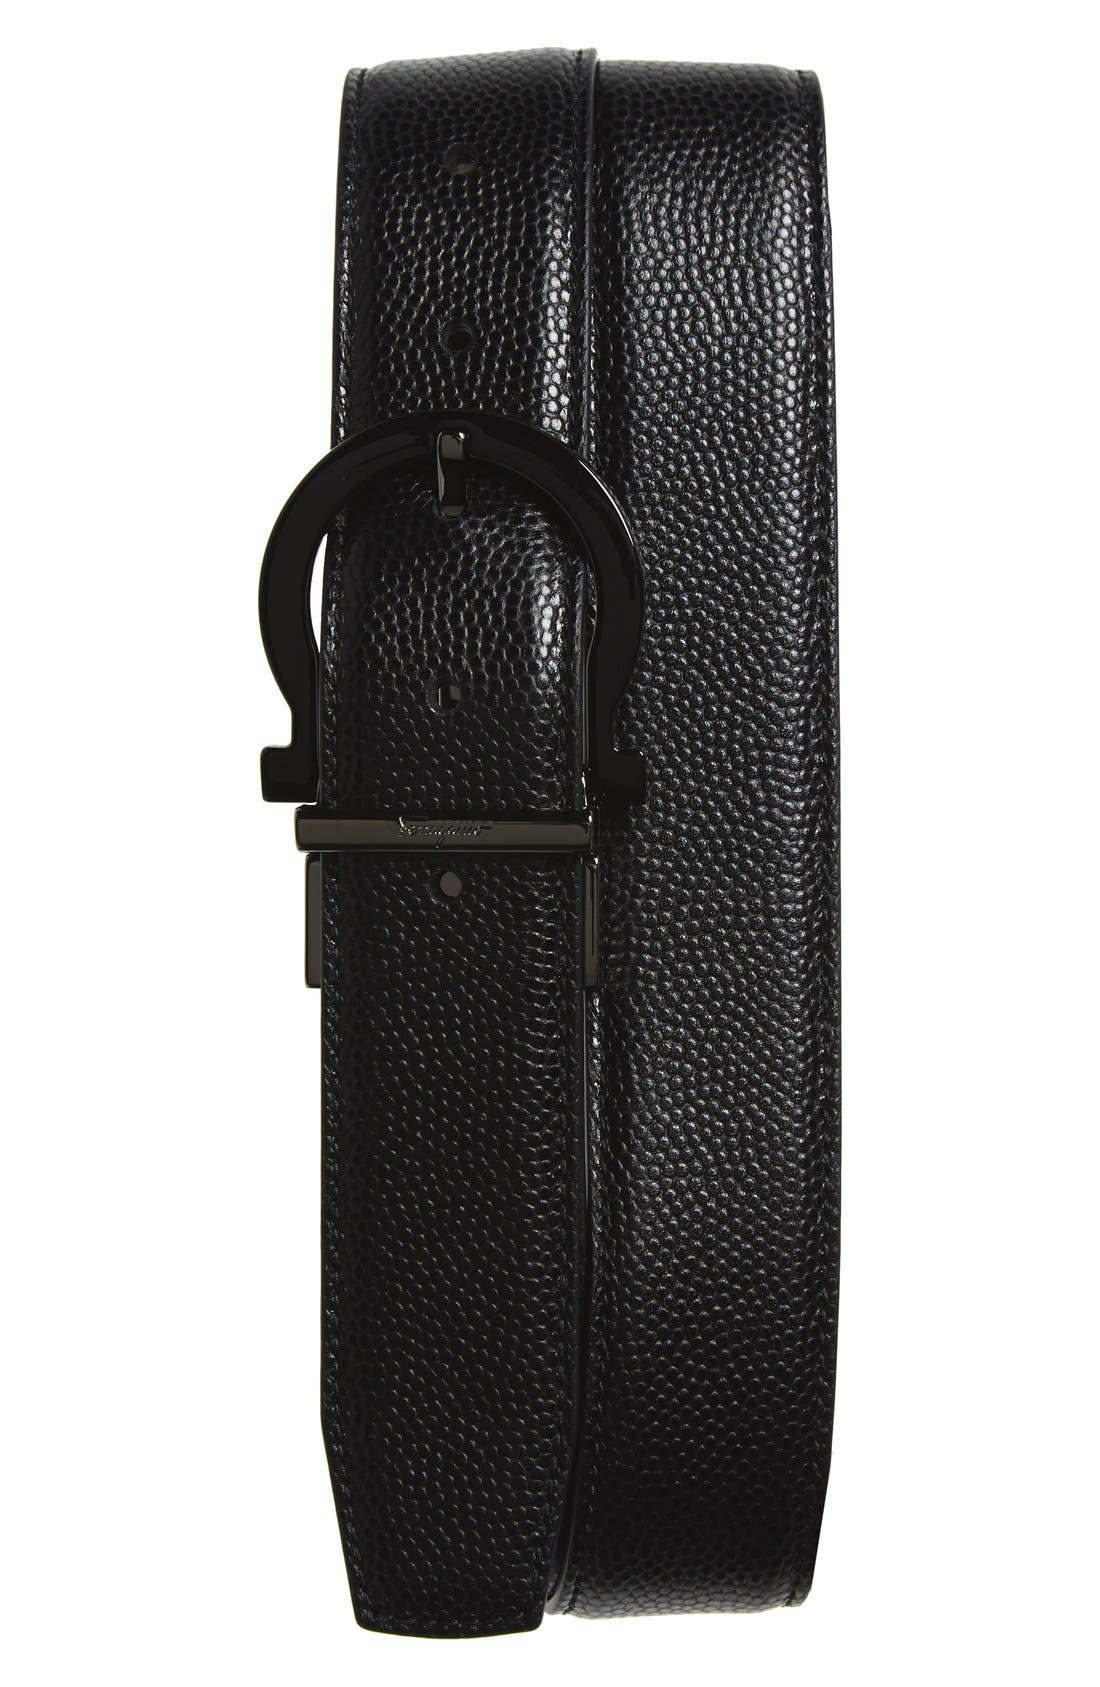 SALVATORE FERRAGAMO Reversible Calfskin Leather Belt